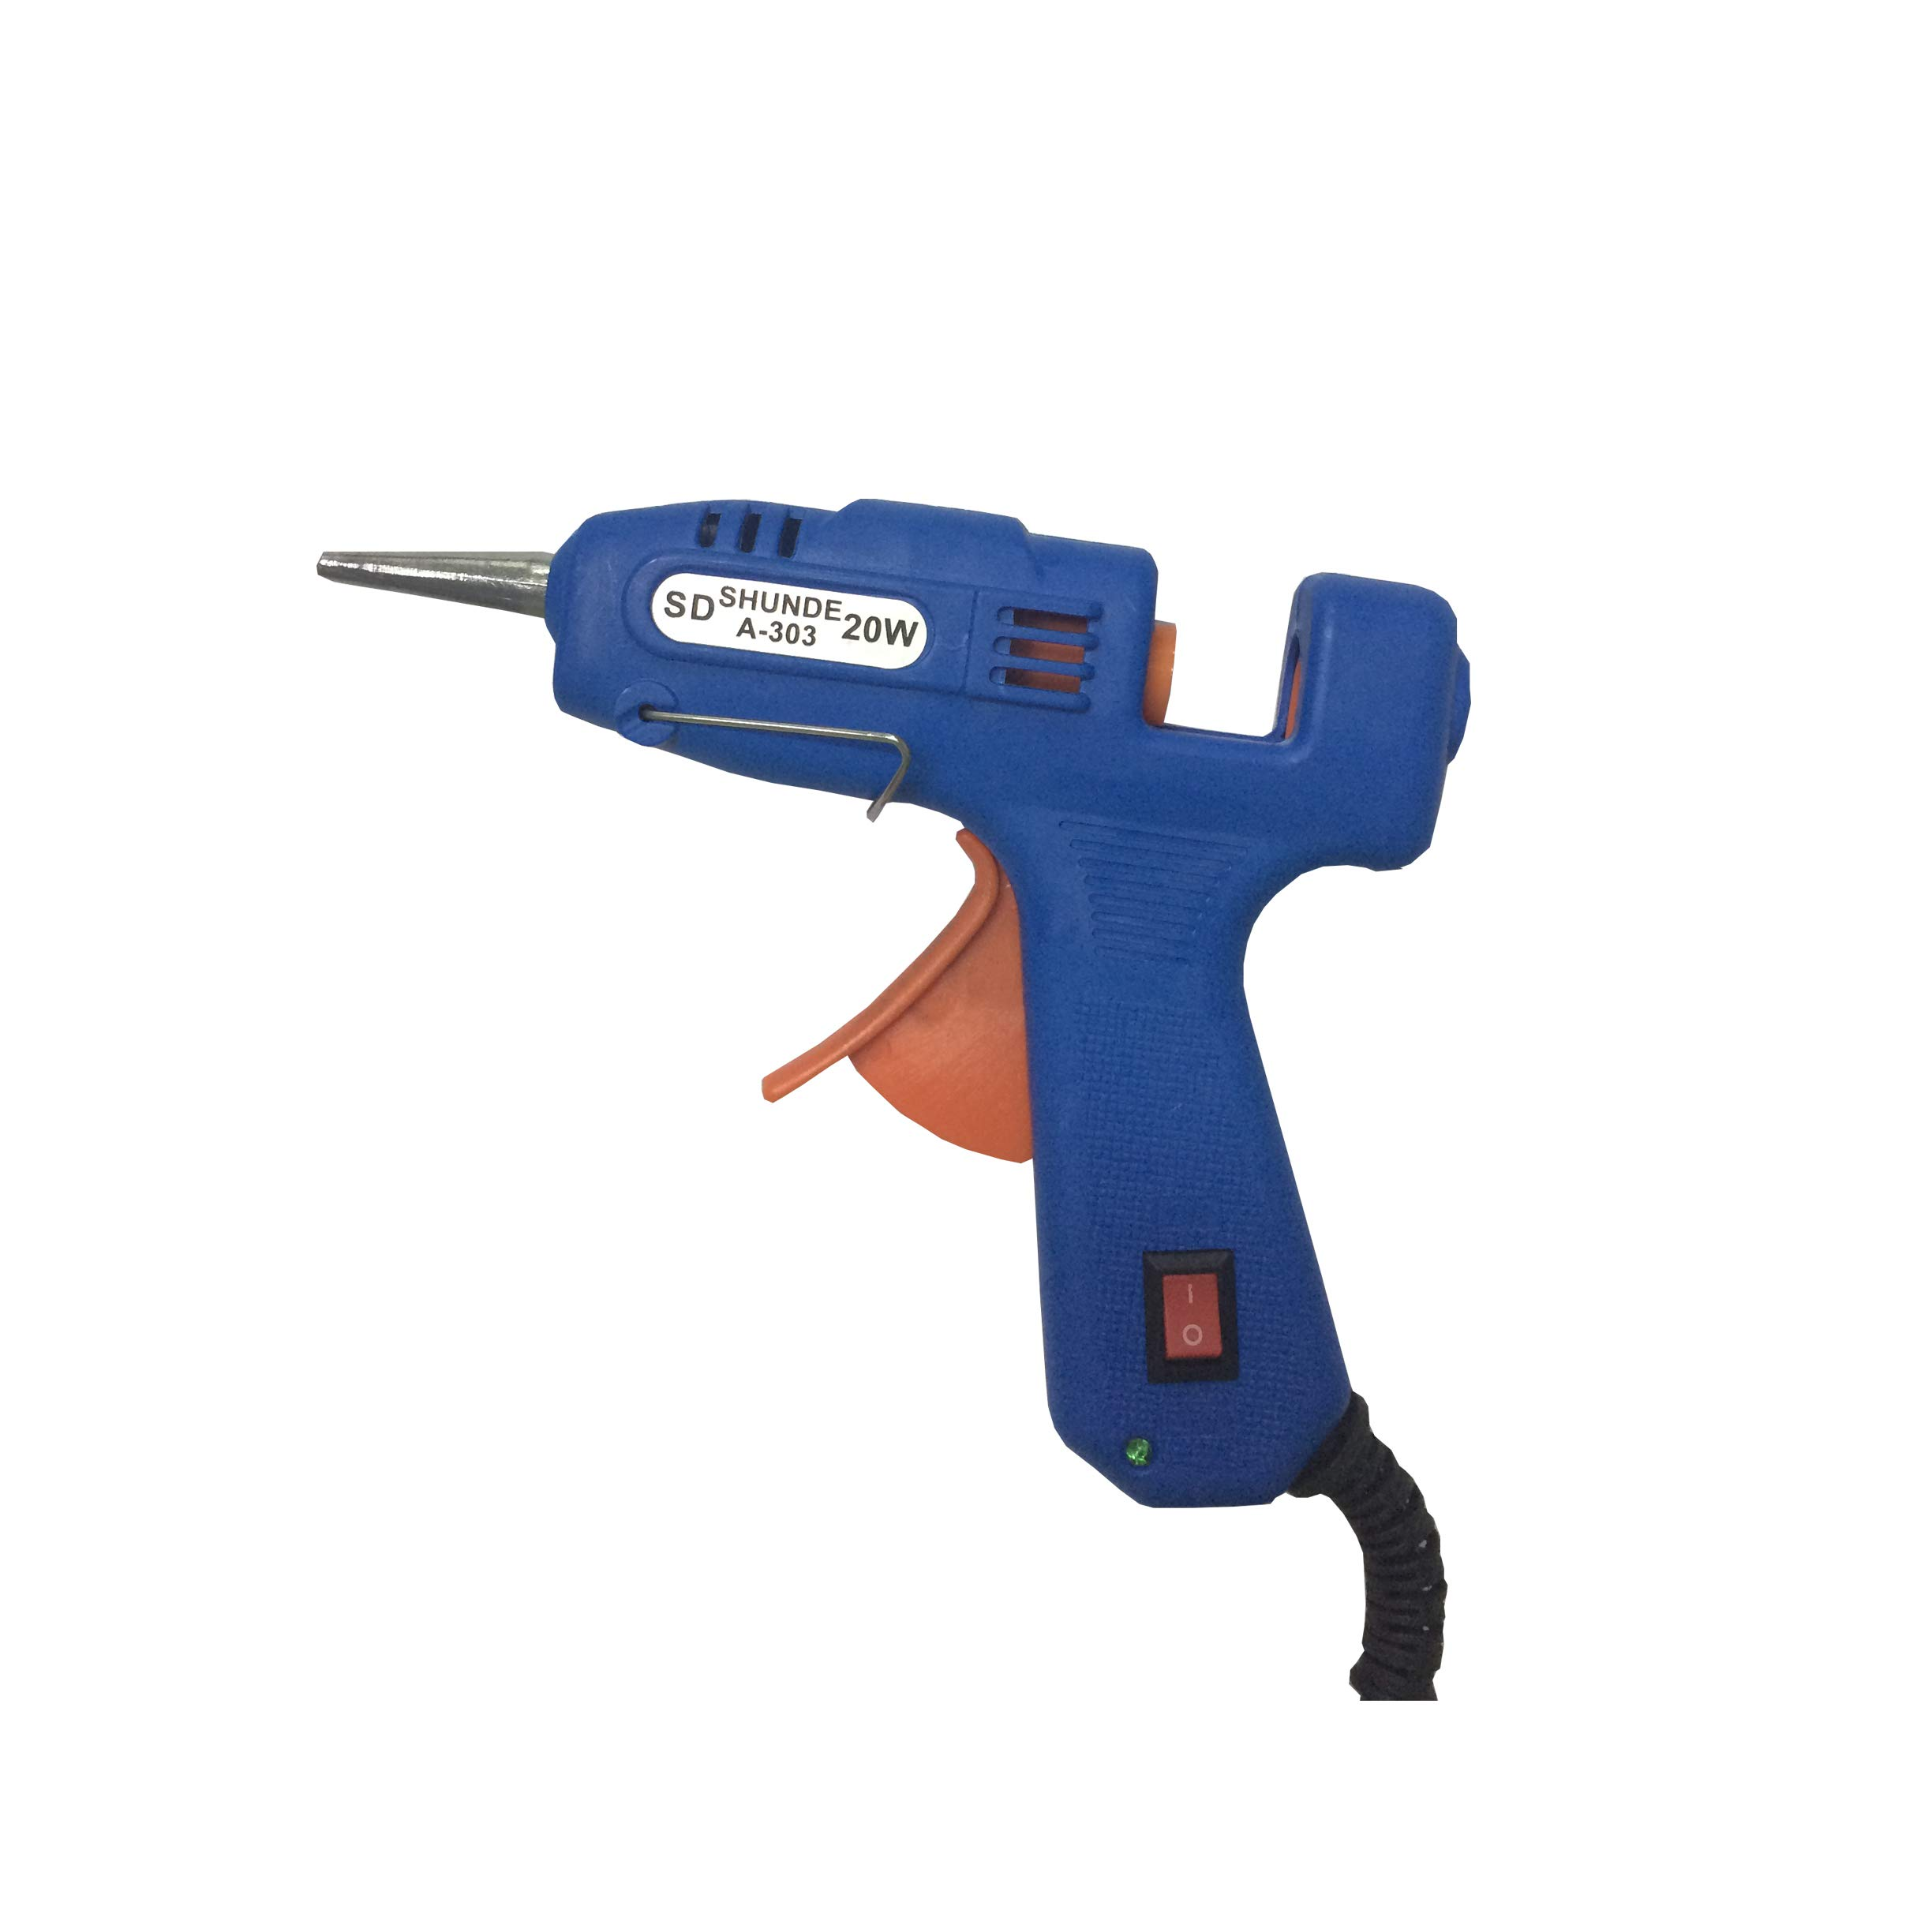 Hot Melt Glue Gun with LED Indicator for DIY Arts Crafts Projects and Small Repair Jobs 20 Watt AC110-240V Blue